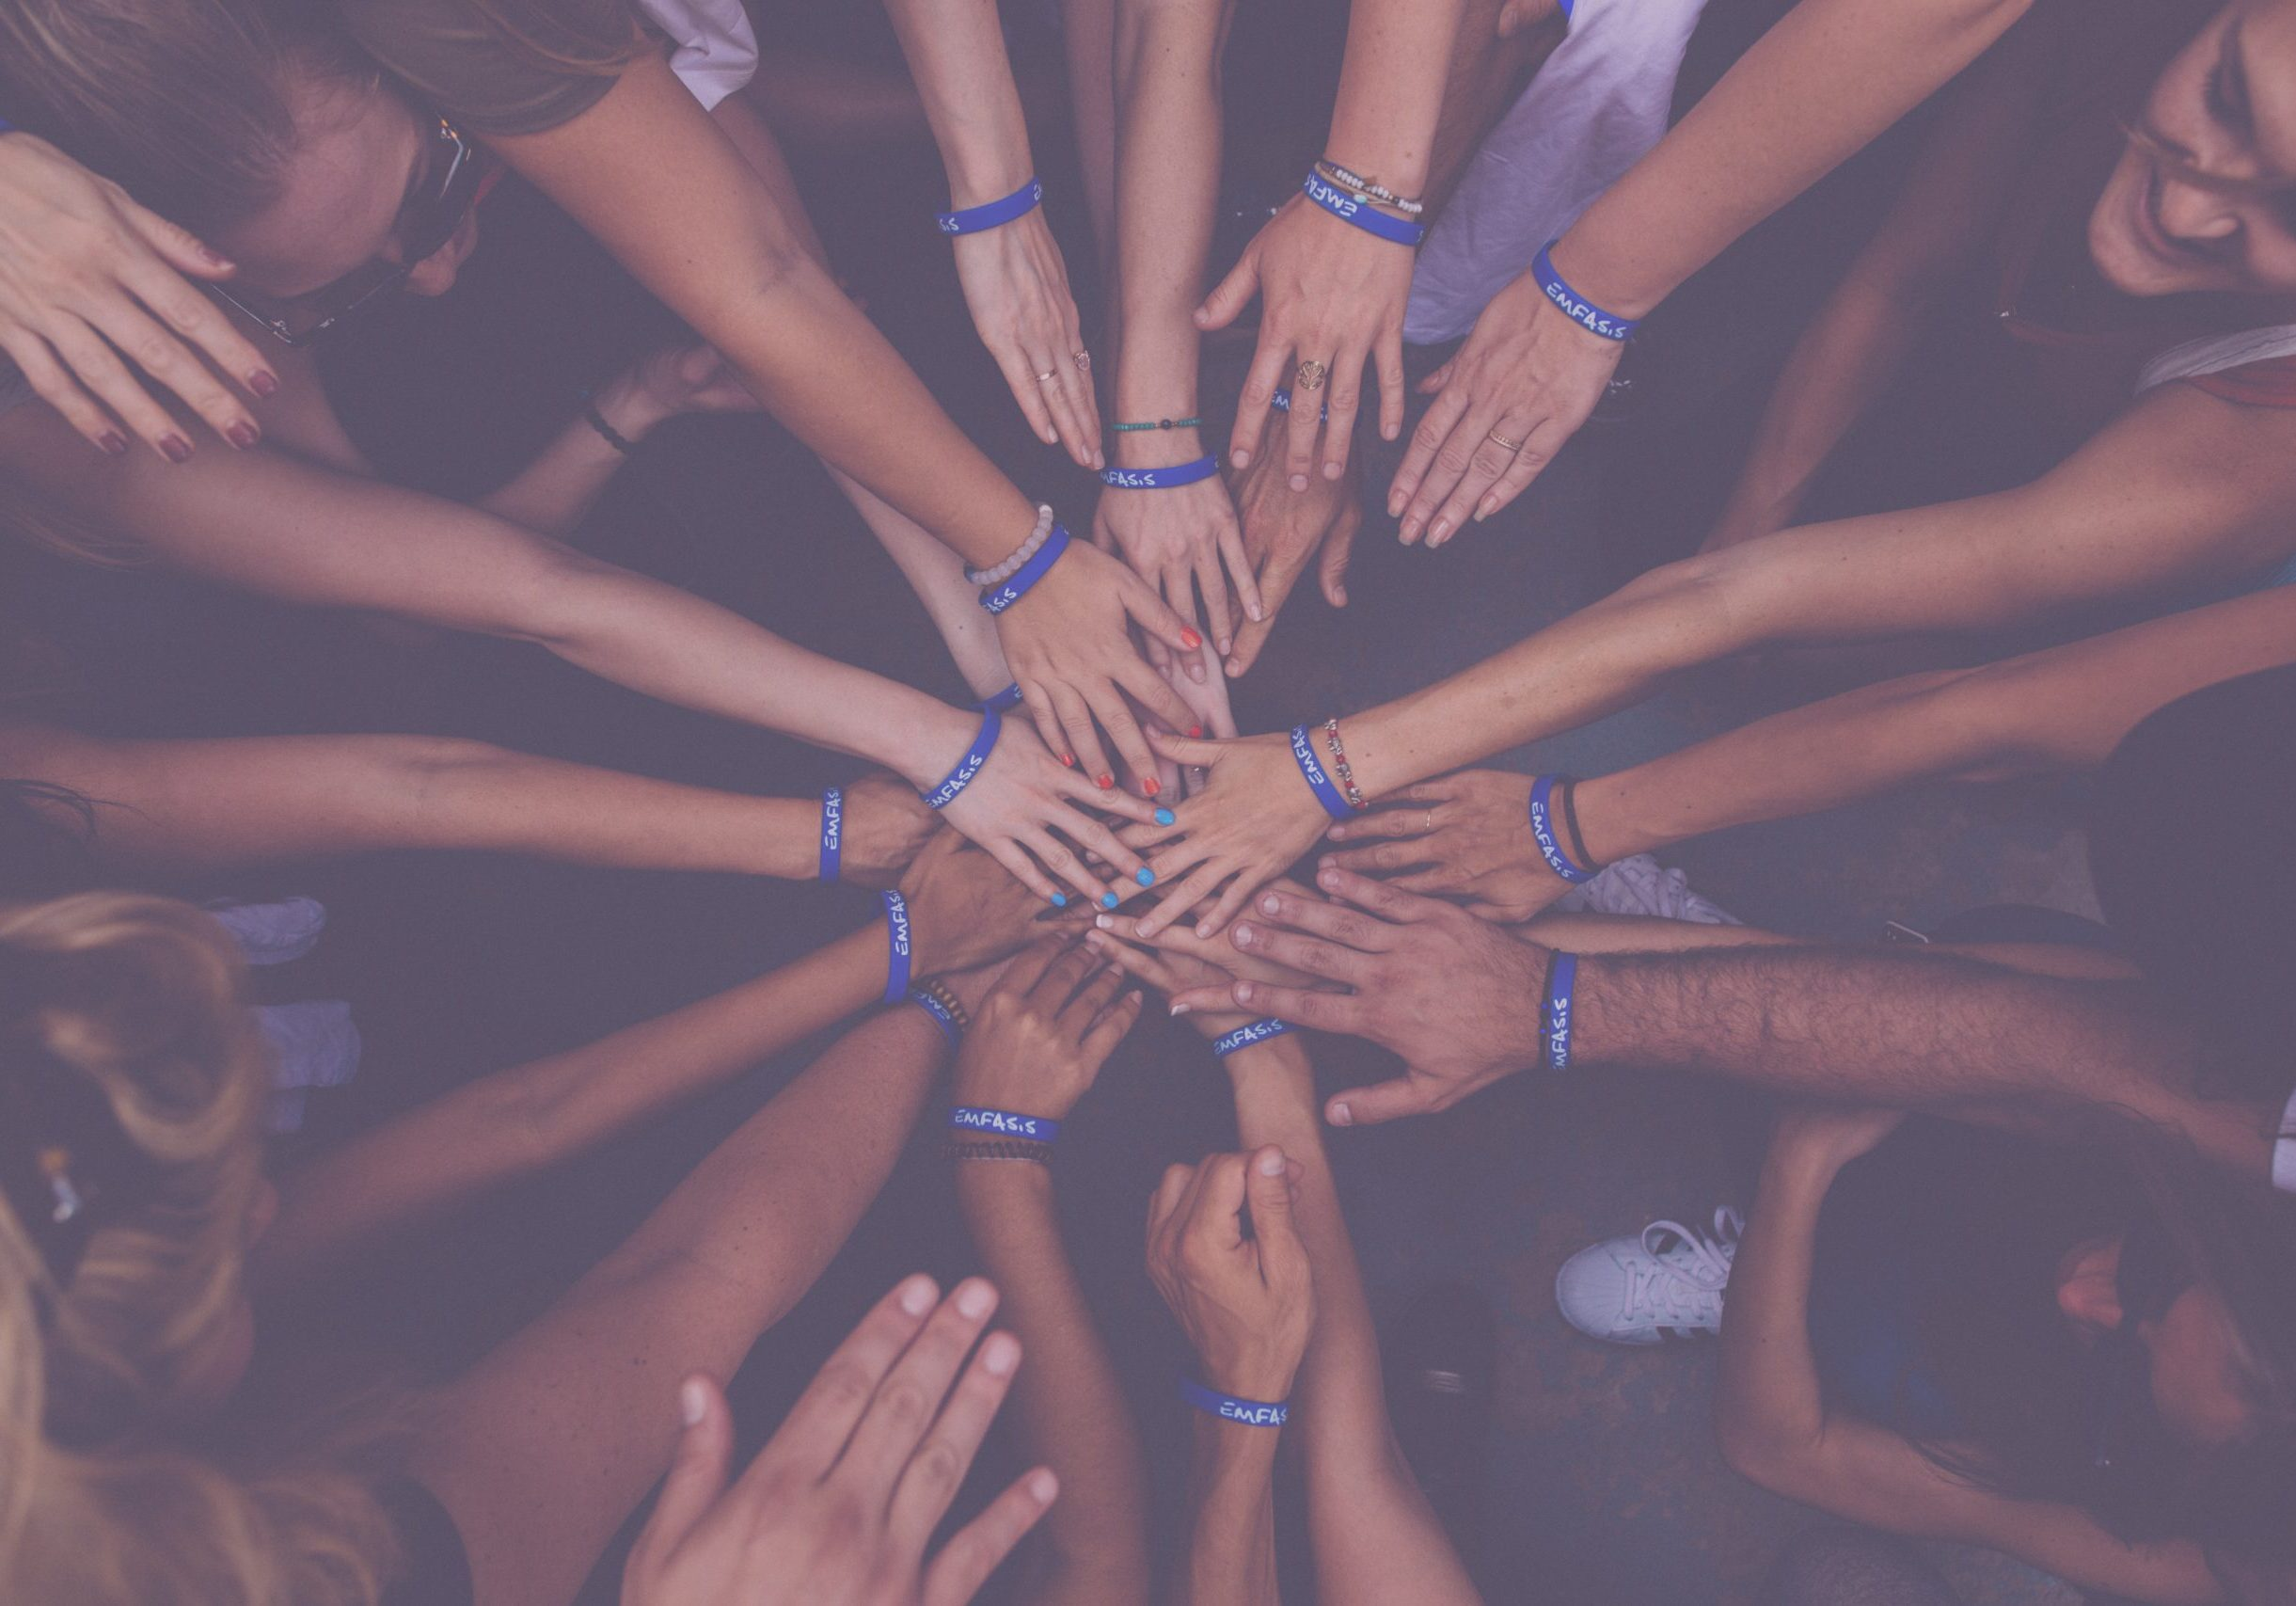 A circle of hands joining in the middle